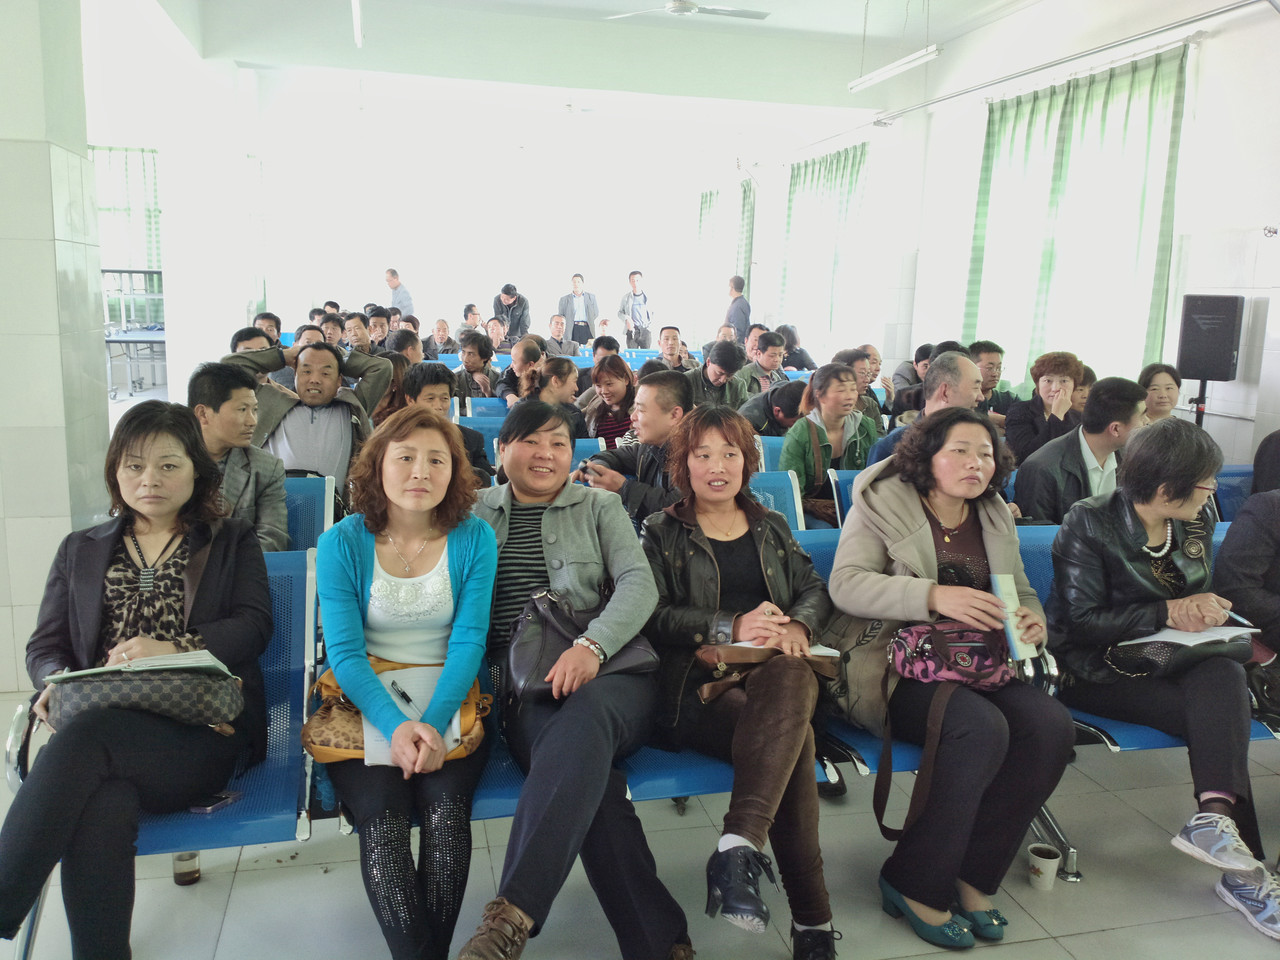 20130426_1032_0042 village doctor training. hall in Fuping country.